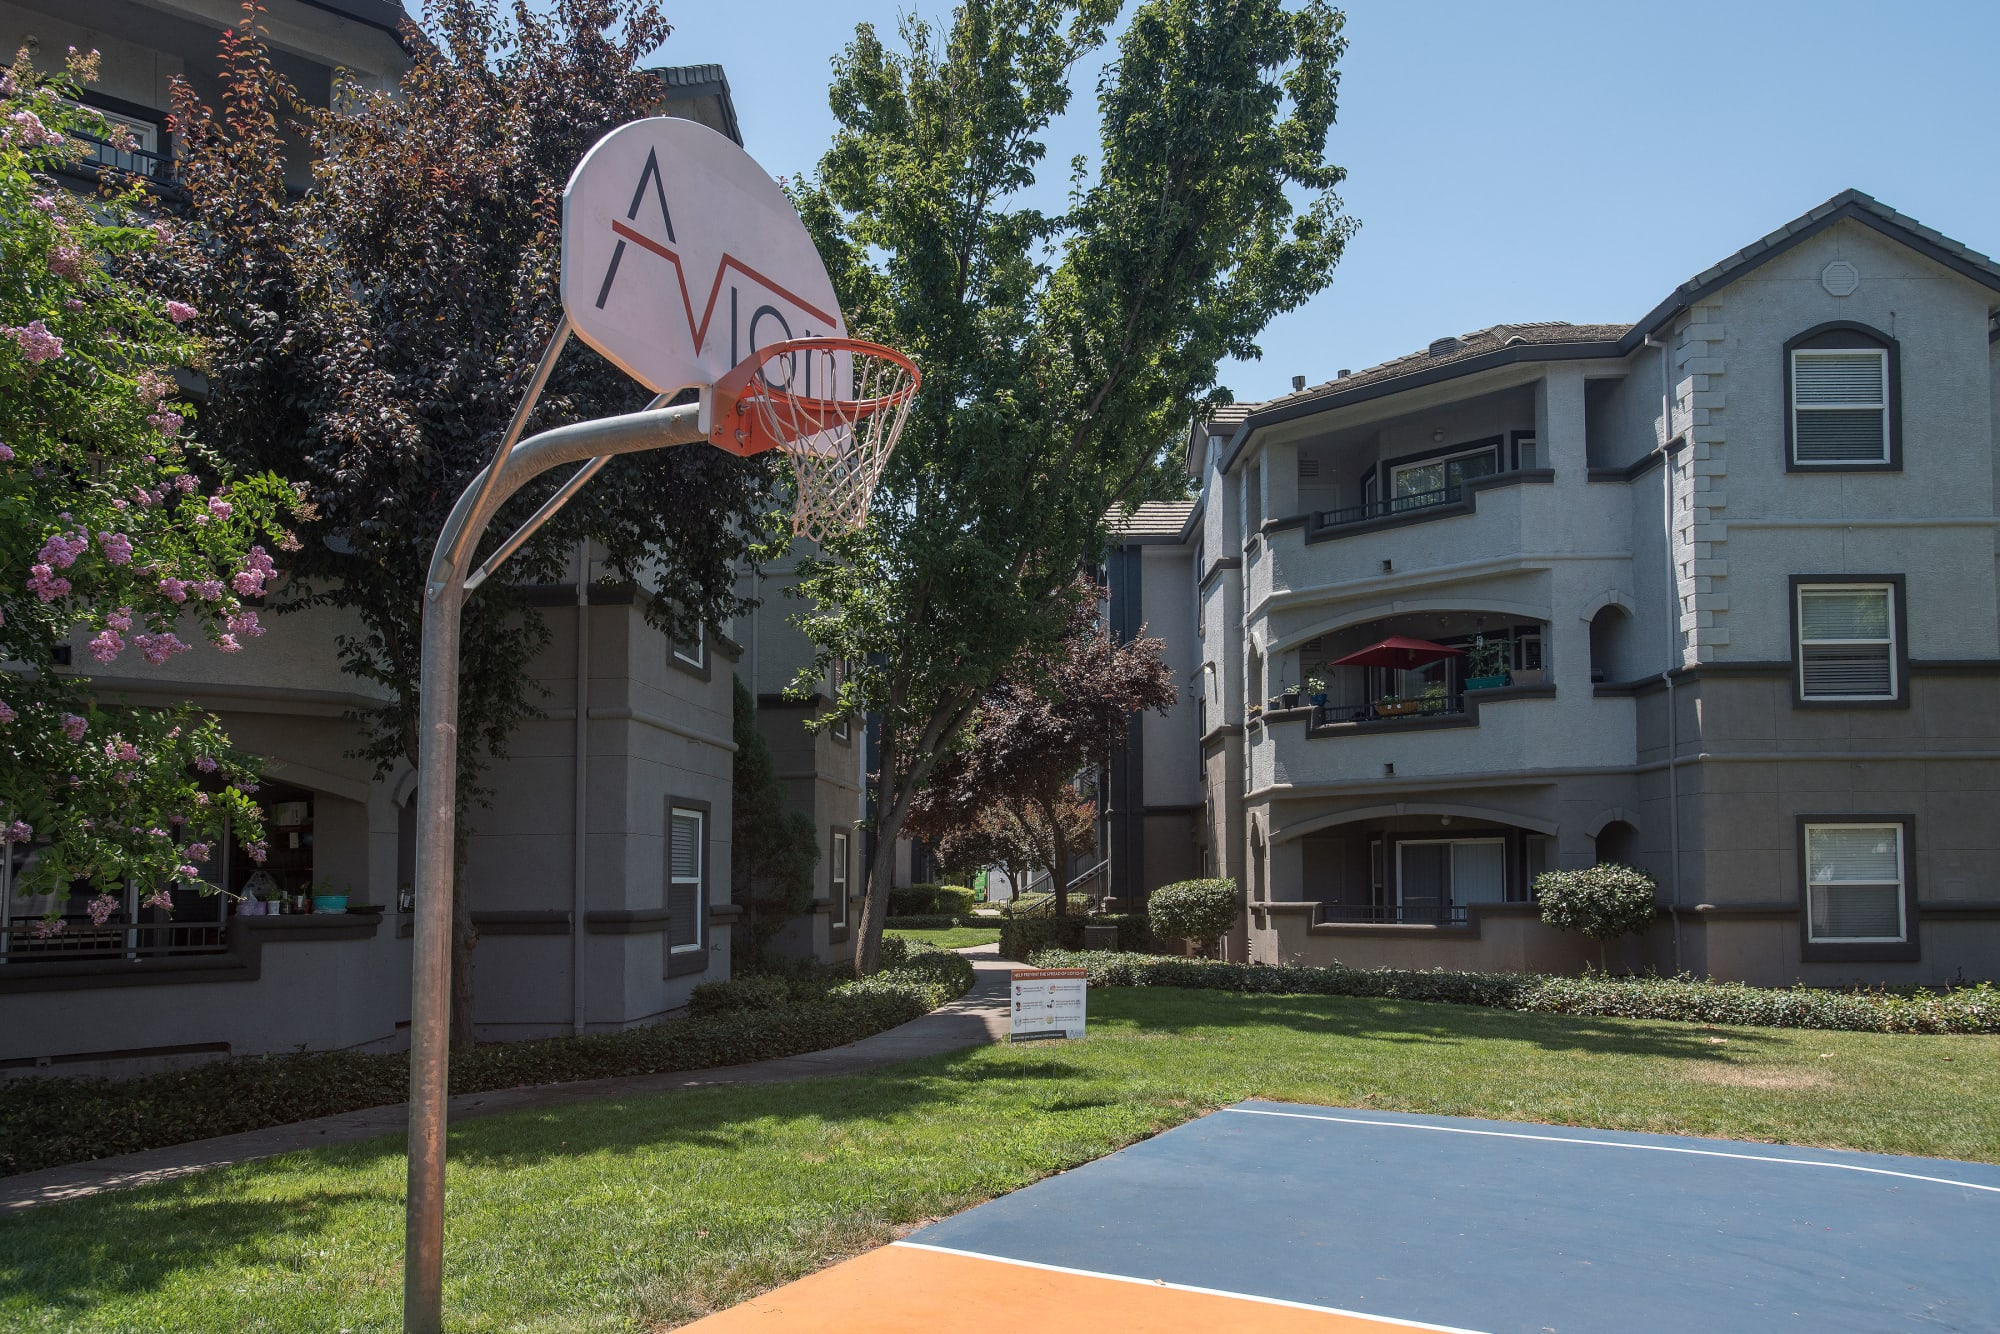 Community basketball court at Avion Apartments in Rancho Cordova, California